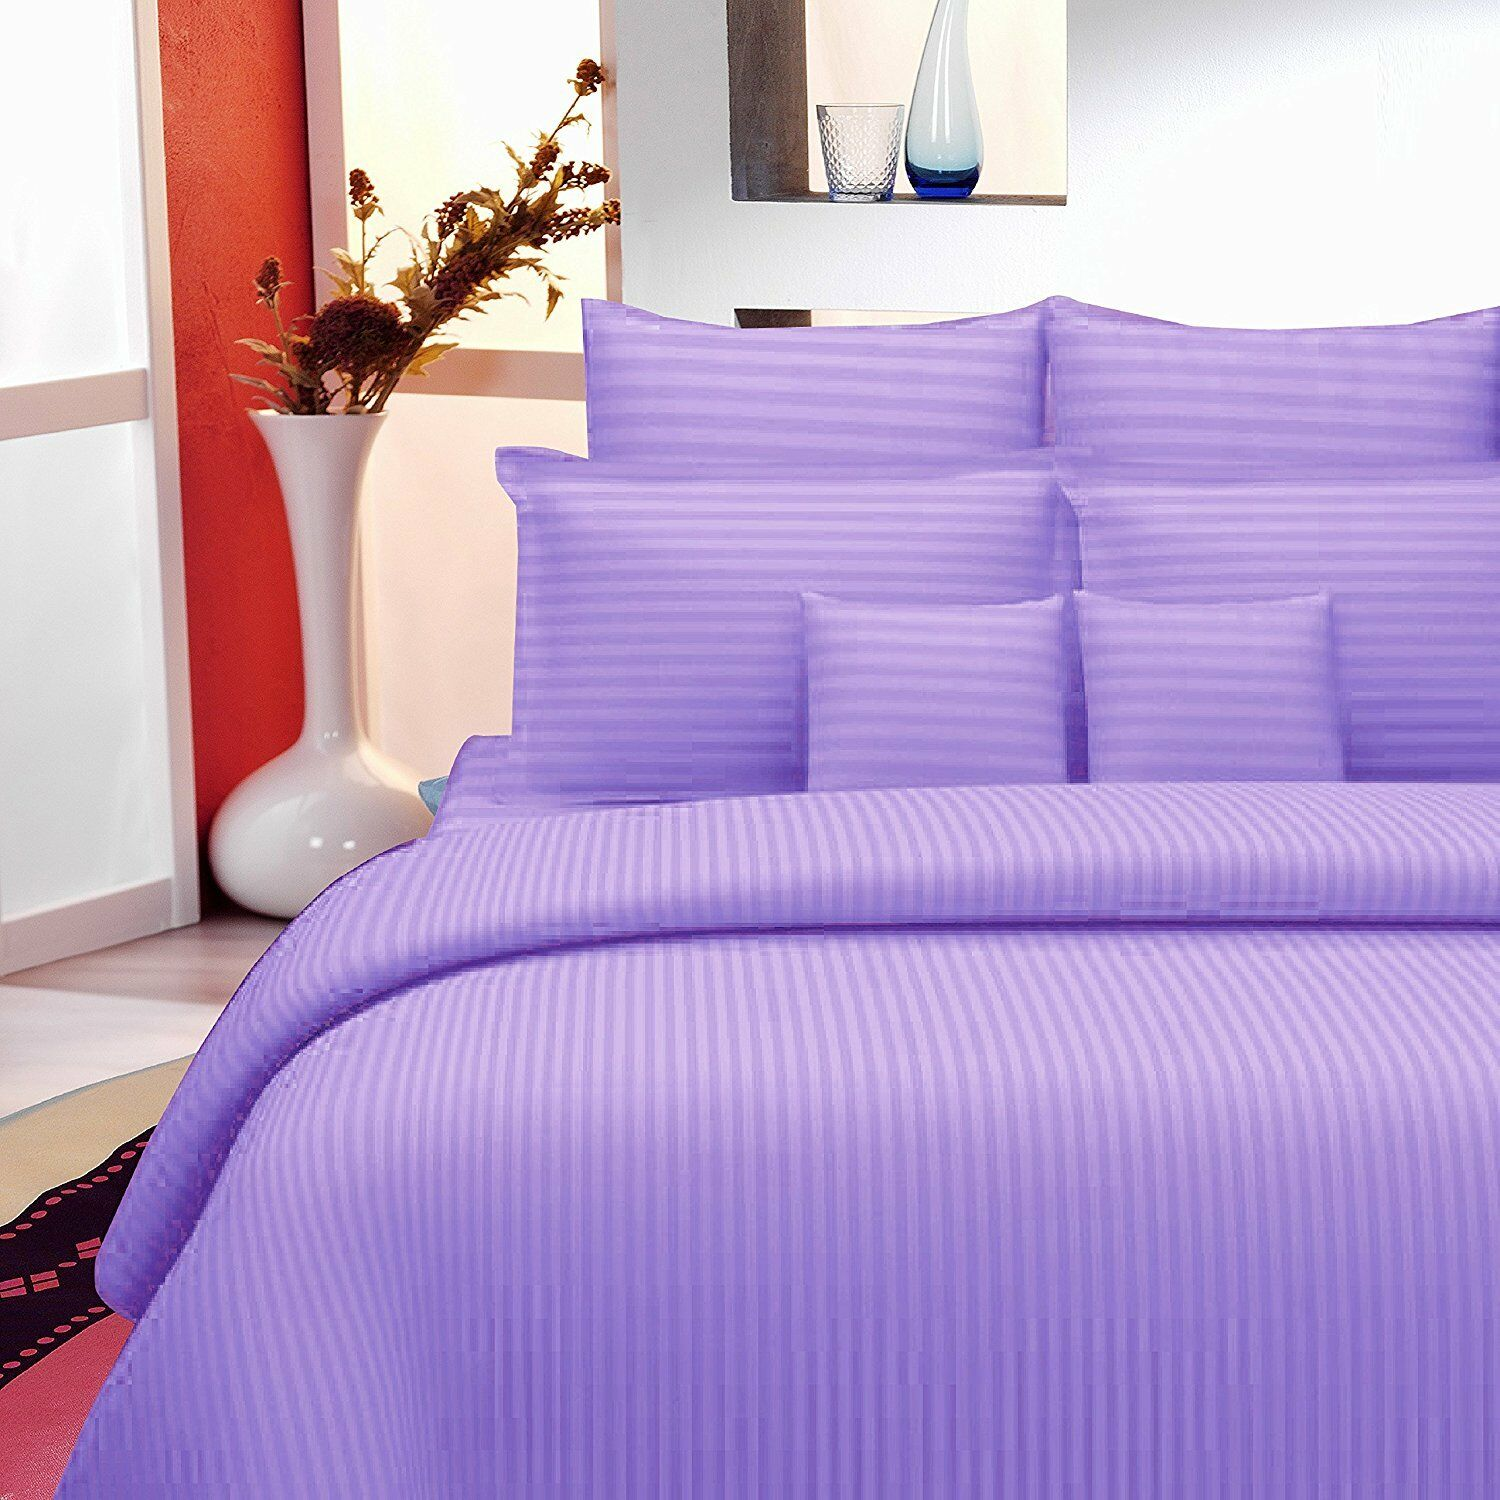 Indian Handmade Plain Purple 100% Cotton Bed Sheet Two Pillow Covers Set